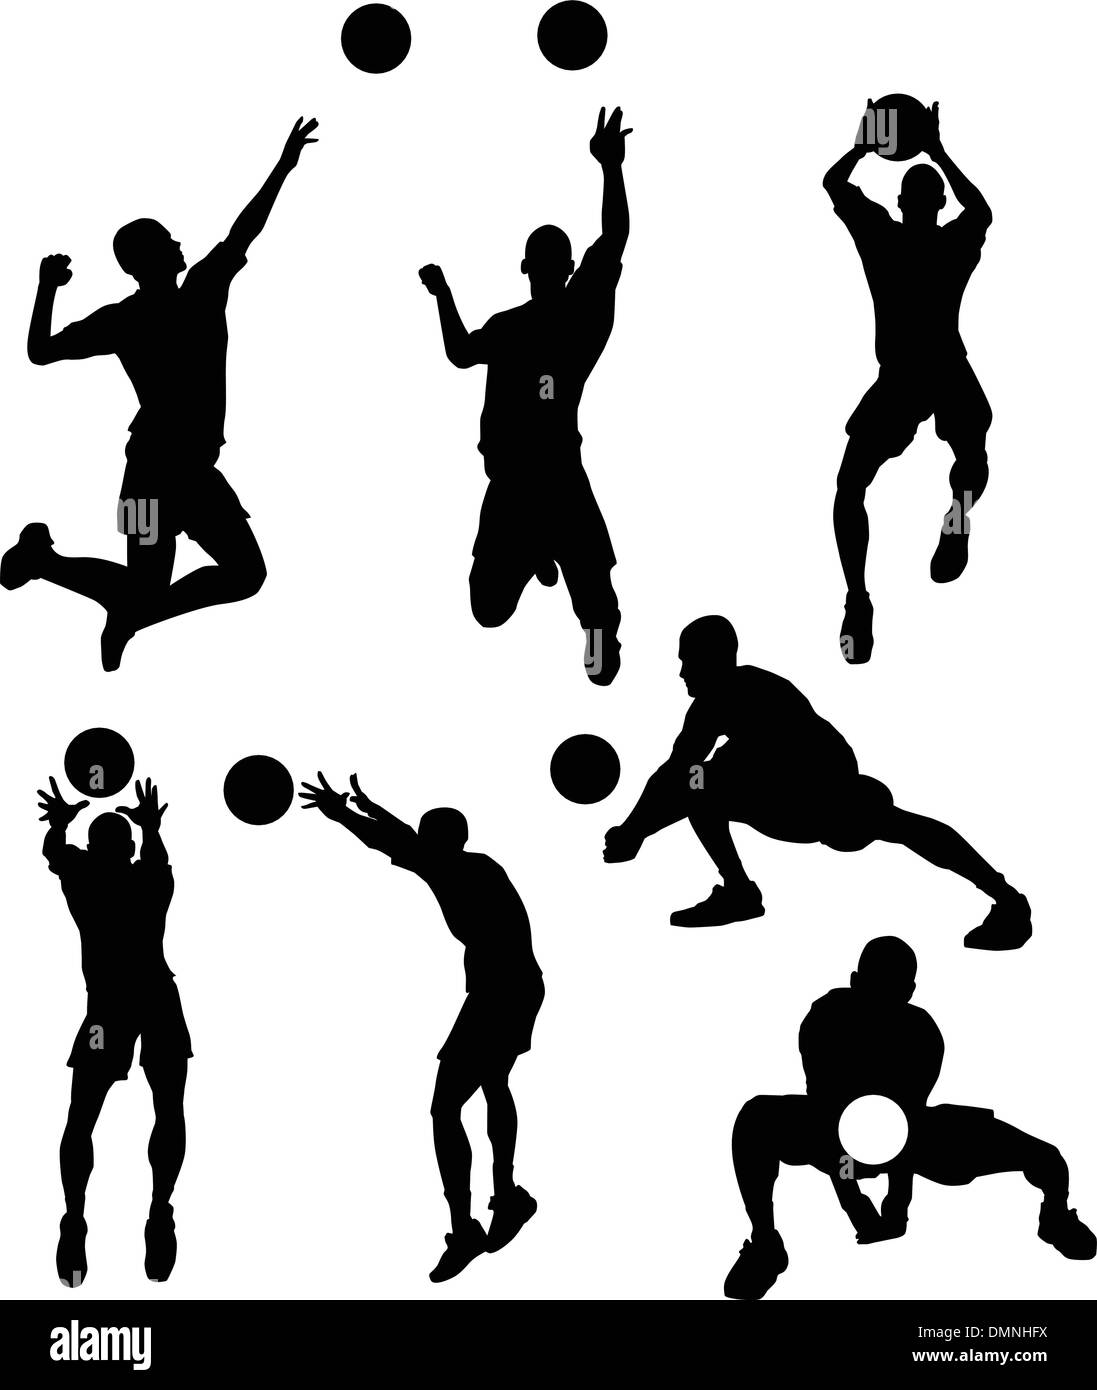 Volleyball Player Hitting Ball Male Silhouette, Vector